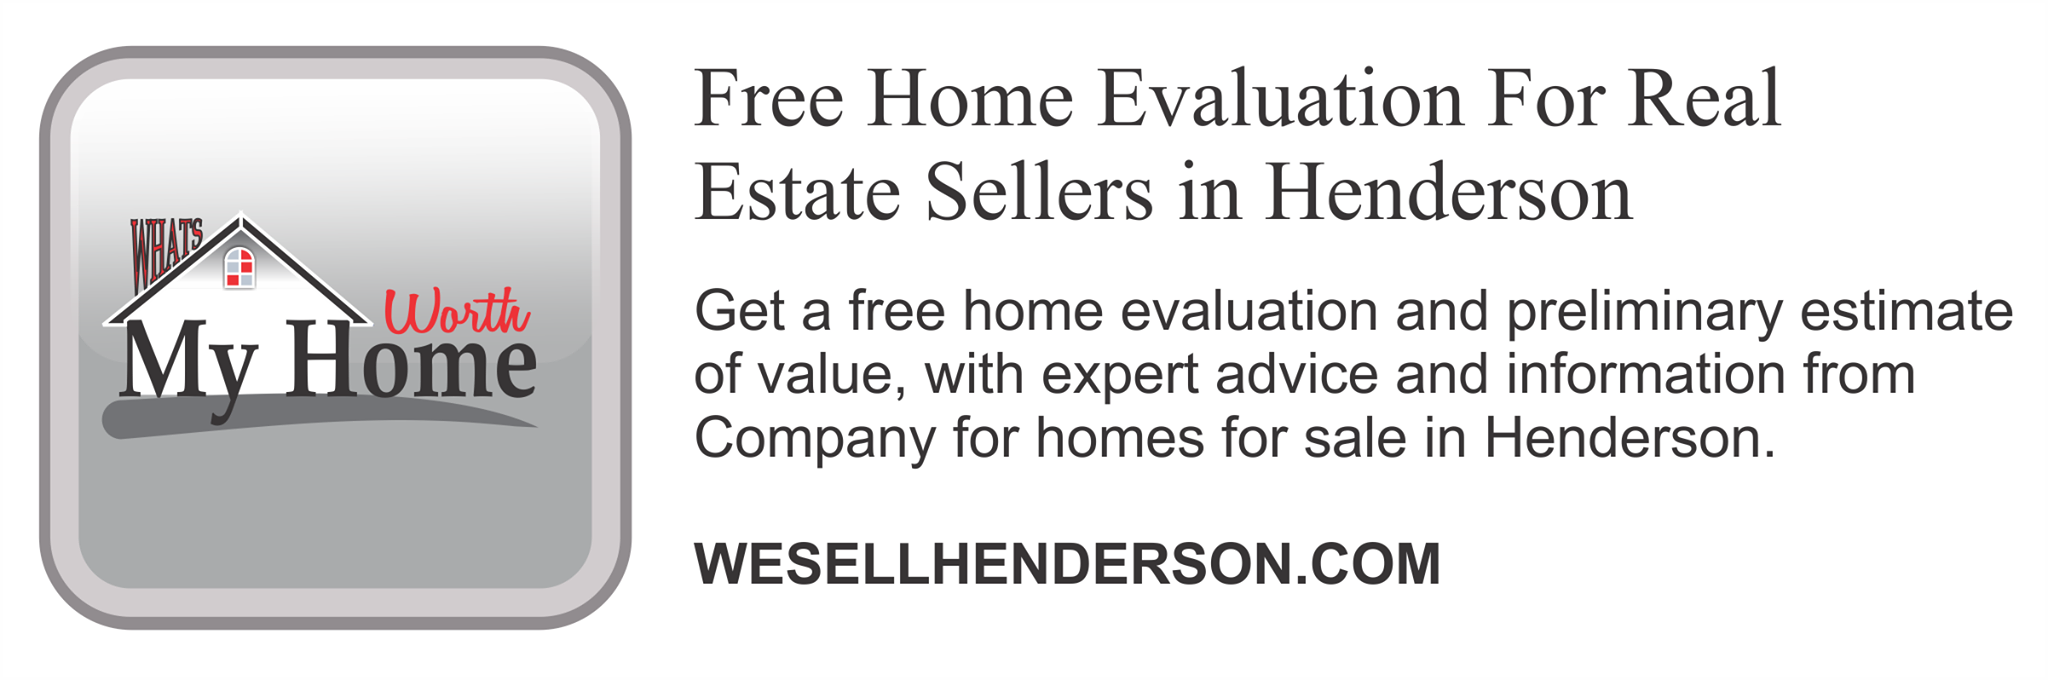 Free Home Valuation Report HttpWwwWesellhendersonComHome